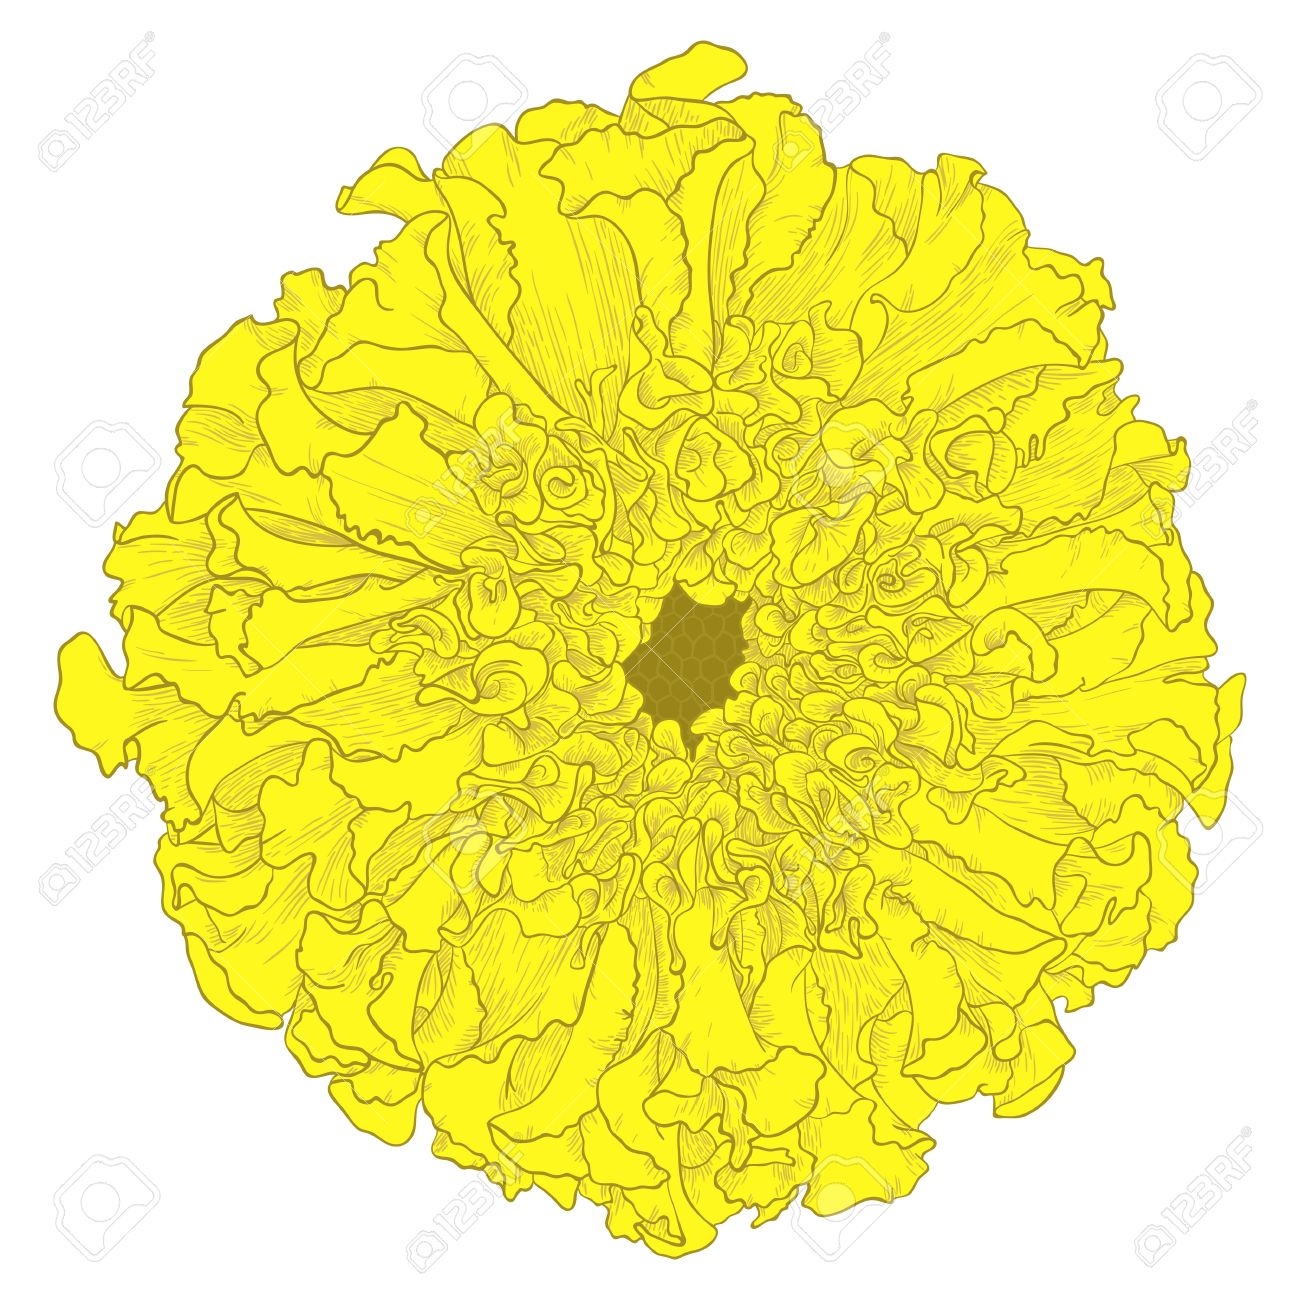 Marigold clipart #3, Download drawings